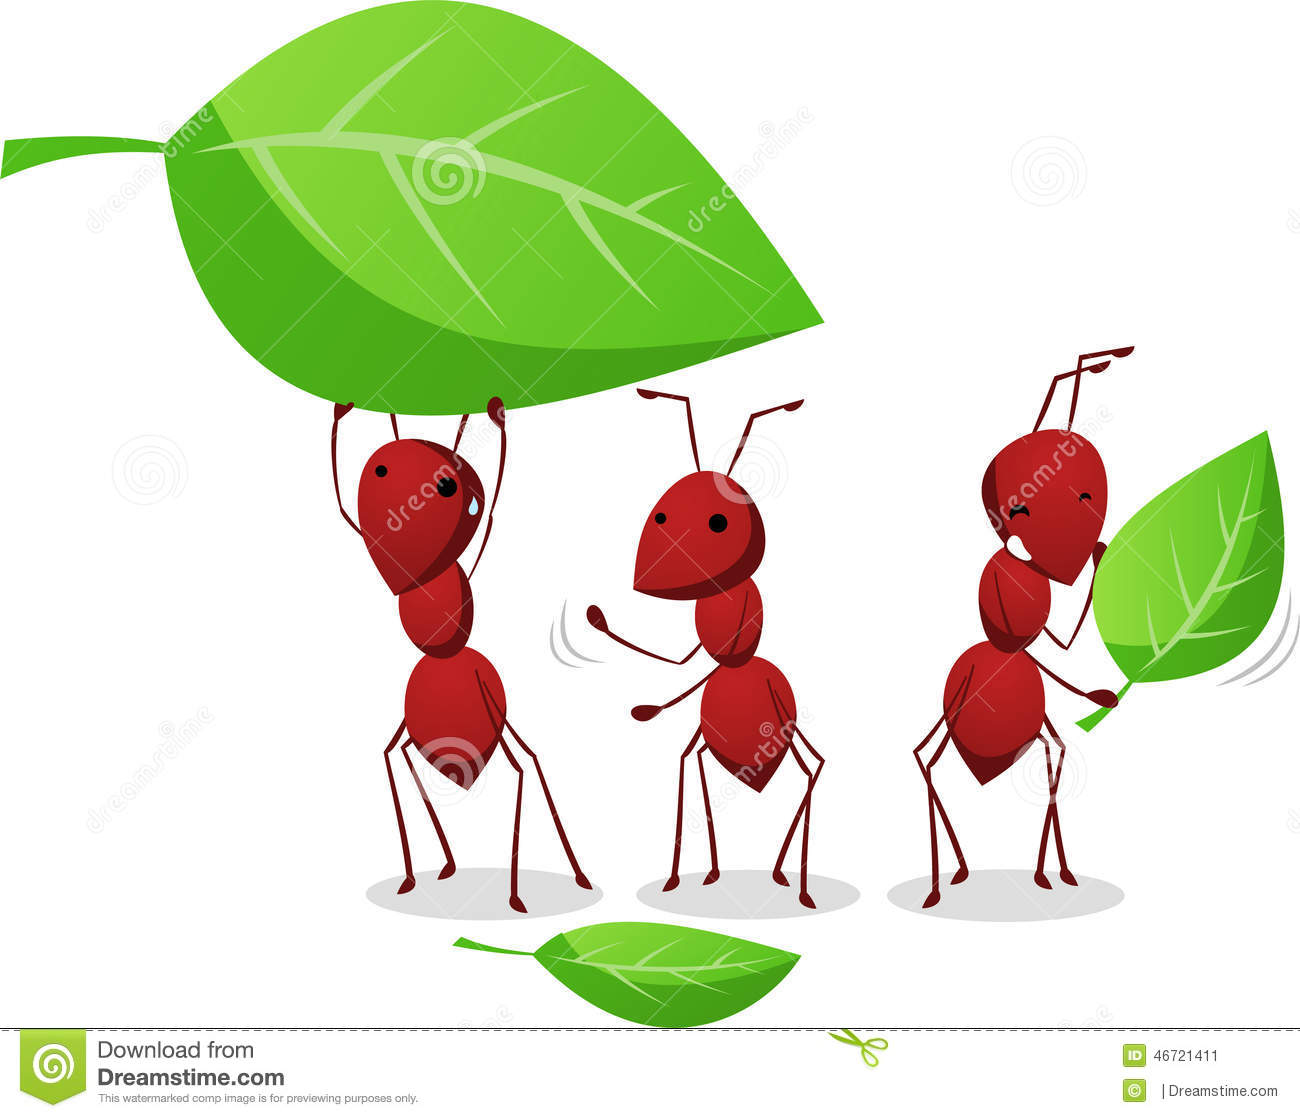 Ants nest clipart png freeuse download Ants Nest Clipart & Free Clip Art Images #1824 - Clipartimage.com png freeuse download